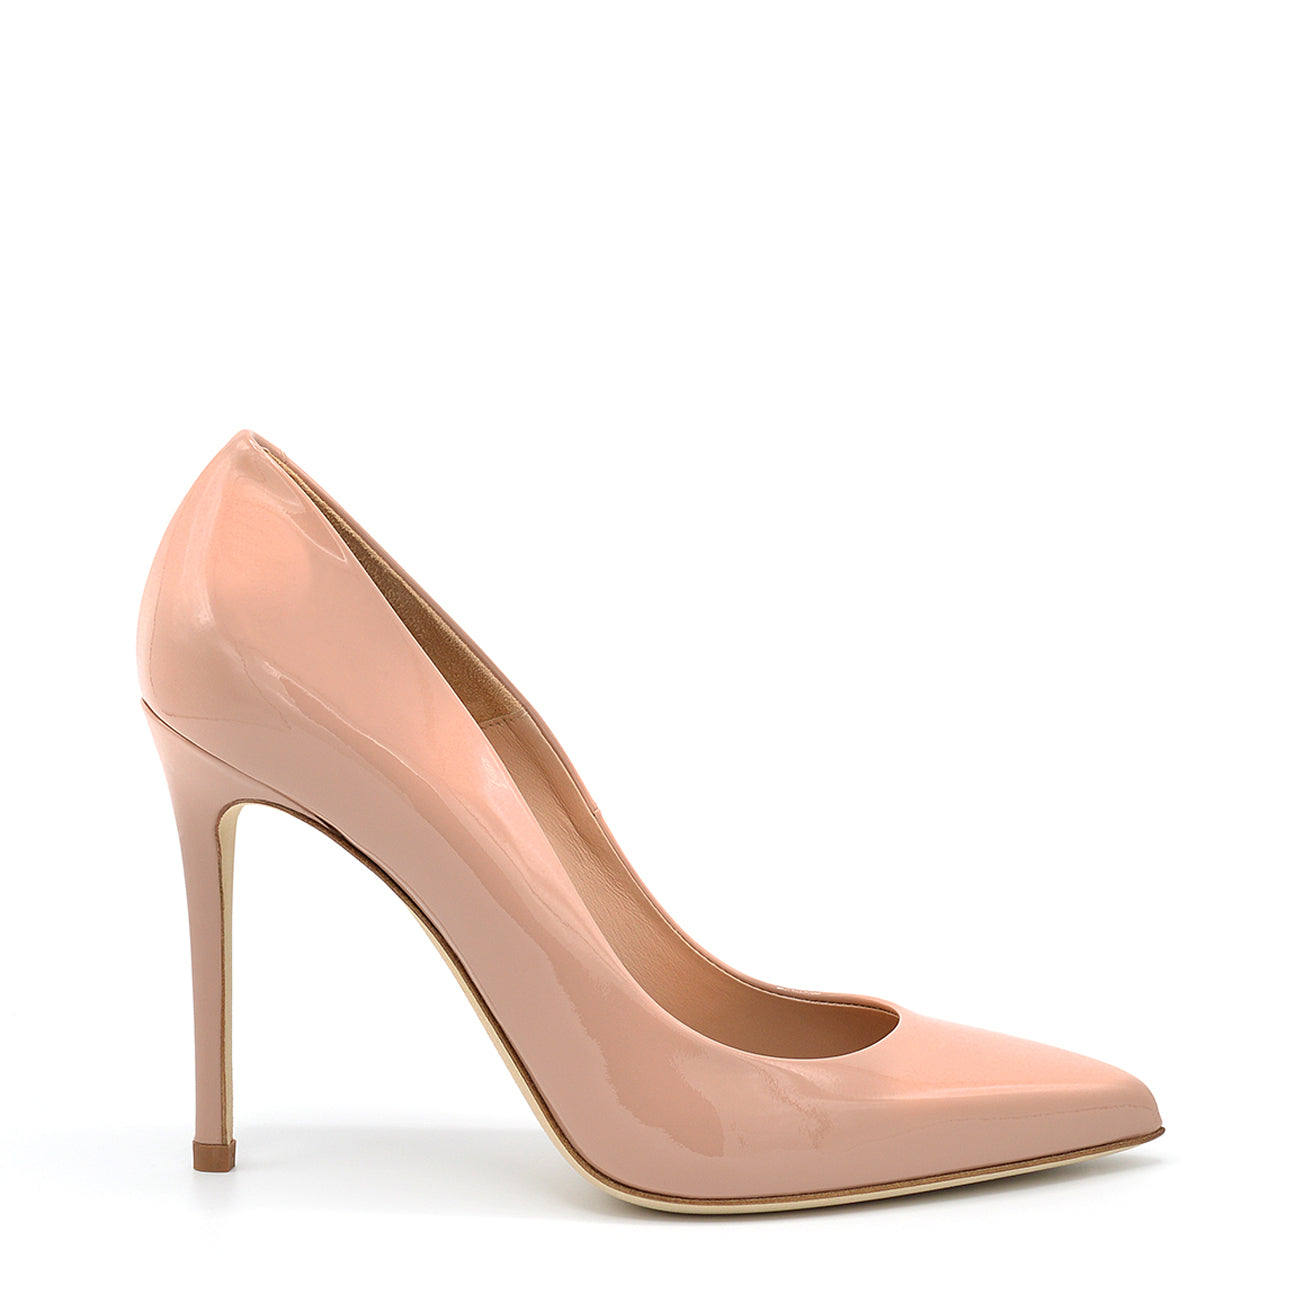 Myss. <br> Timeless natural patent leather pumps